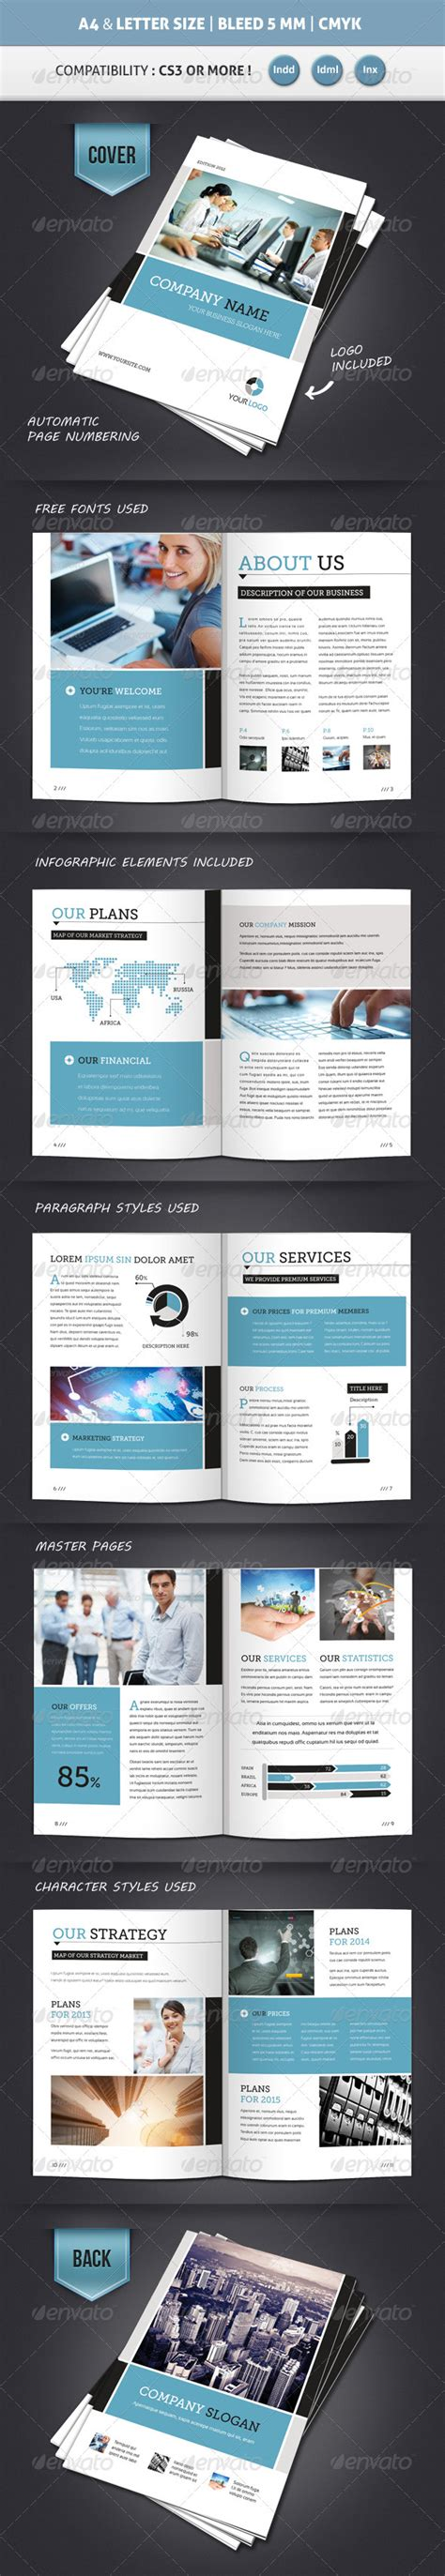 pages brochure templates 12 page brochure printing various high professional